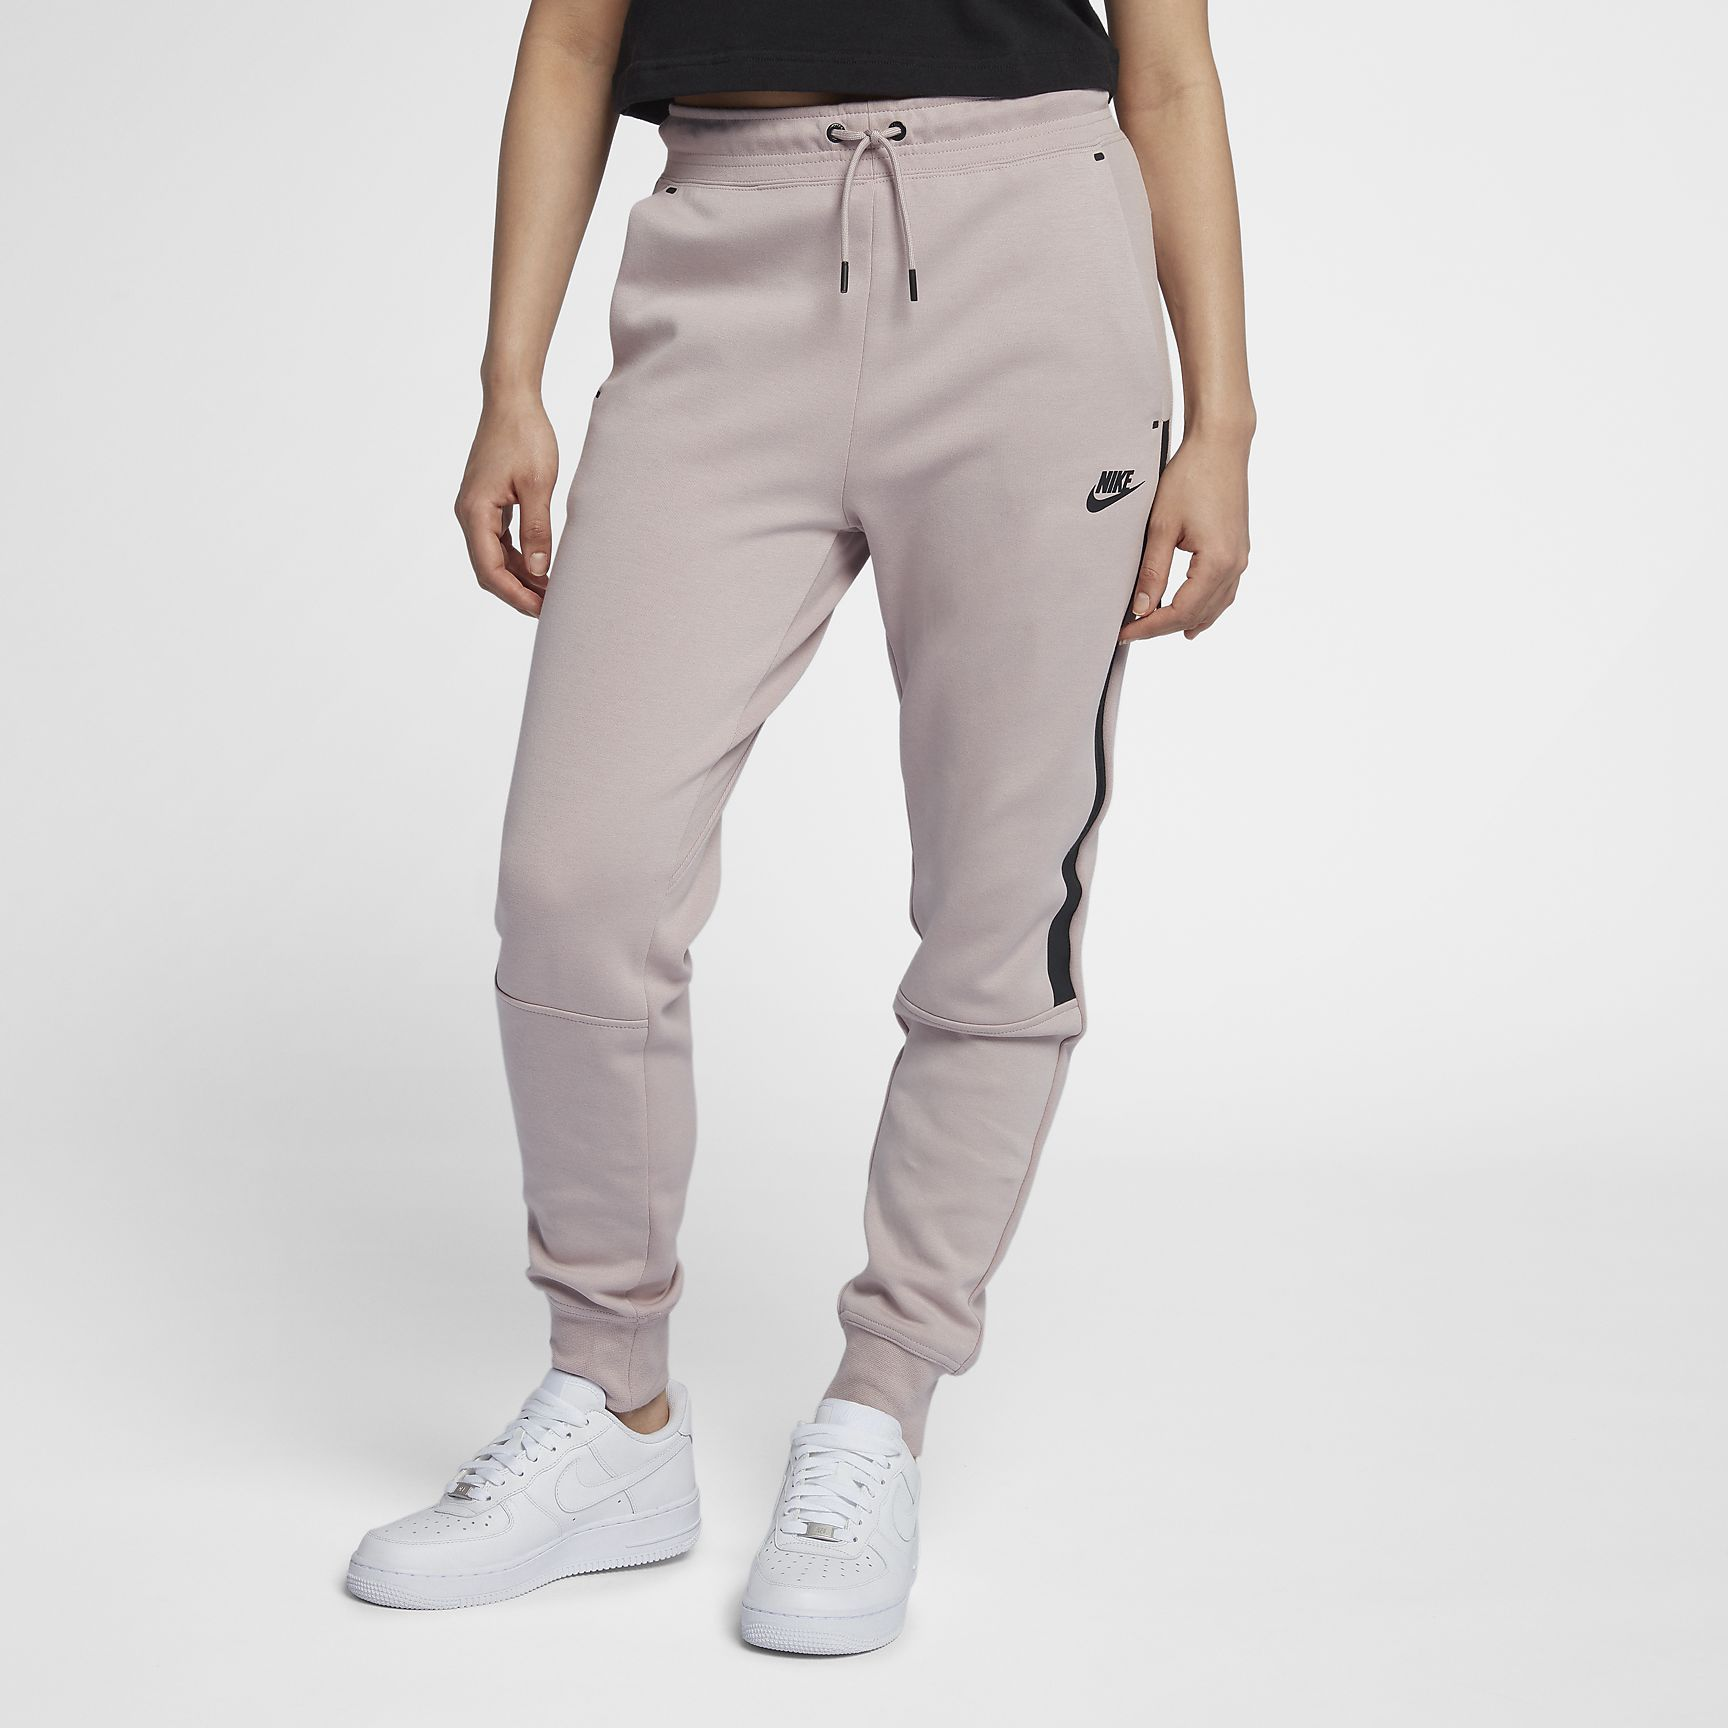 Nike Sportswear Tech Fleece Women S Pants Women Jogger Pants Tech Fleece Track Pants Women